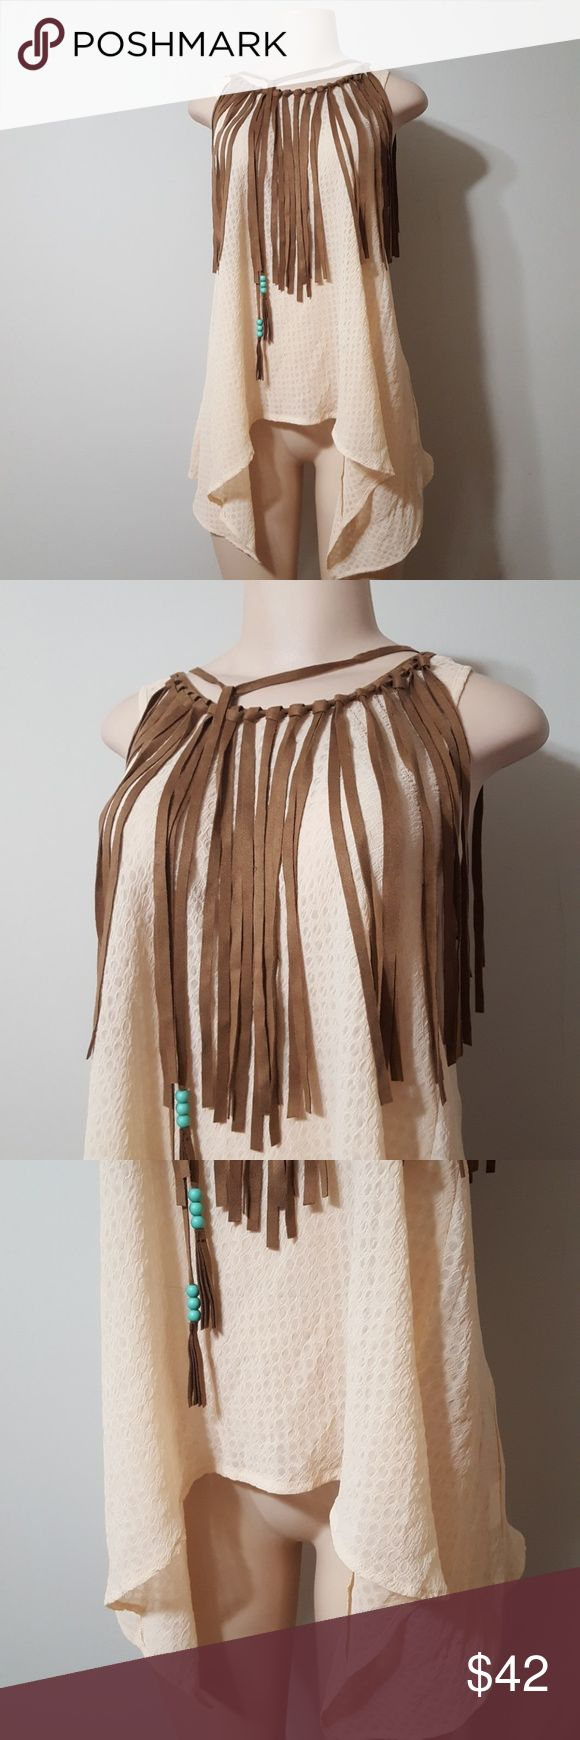 NWT! NEW! JUDITH MARCH FRINGE BLOUSE! NWT! NEW! JUDITH MARCH FRINGE BLOUSE! Love this look & design! High low cut top. Waffle imprint designed fabric. Semi sheer. Light peachy cream color. Long brown suede like fringe front & back. Two long ties with beads to wear in front for style or tie in back for style. This top is beautifully made!! NEW WITH TAGS. Boutique item & tags. Judith March Tops Blouses